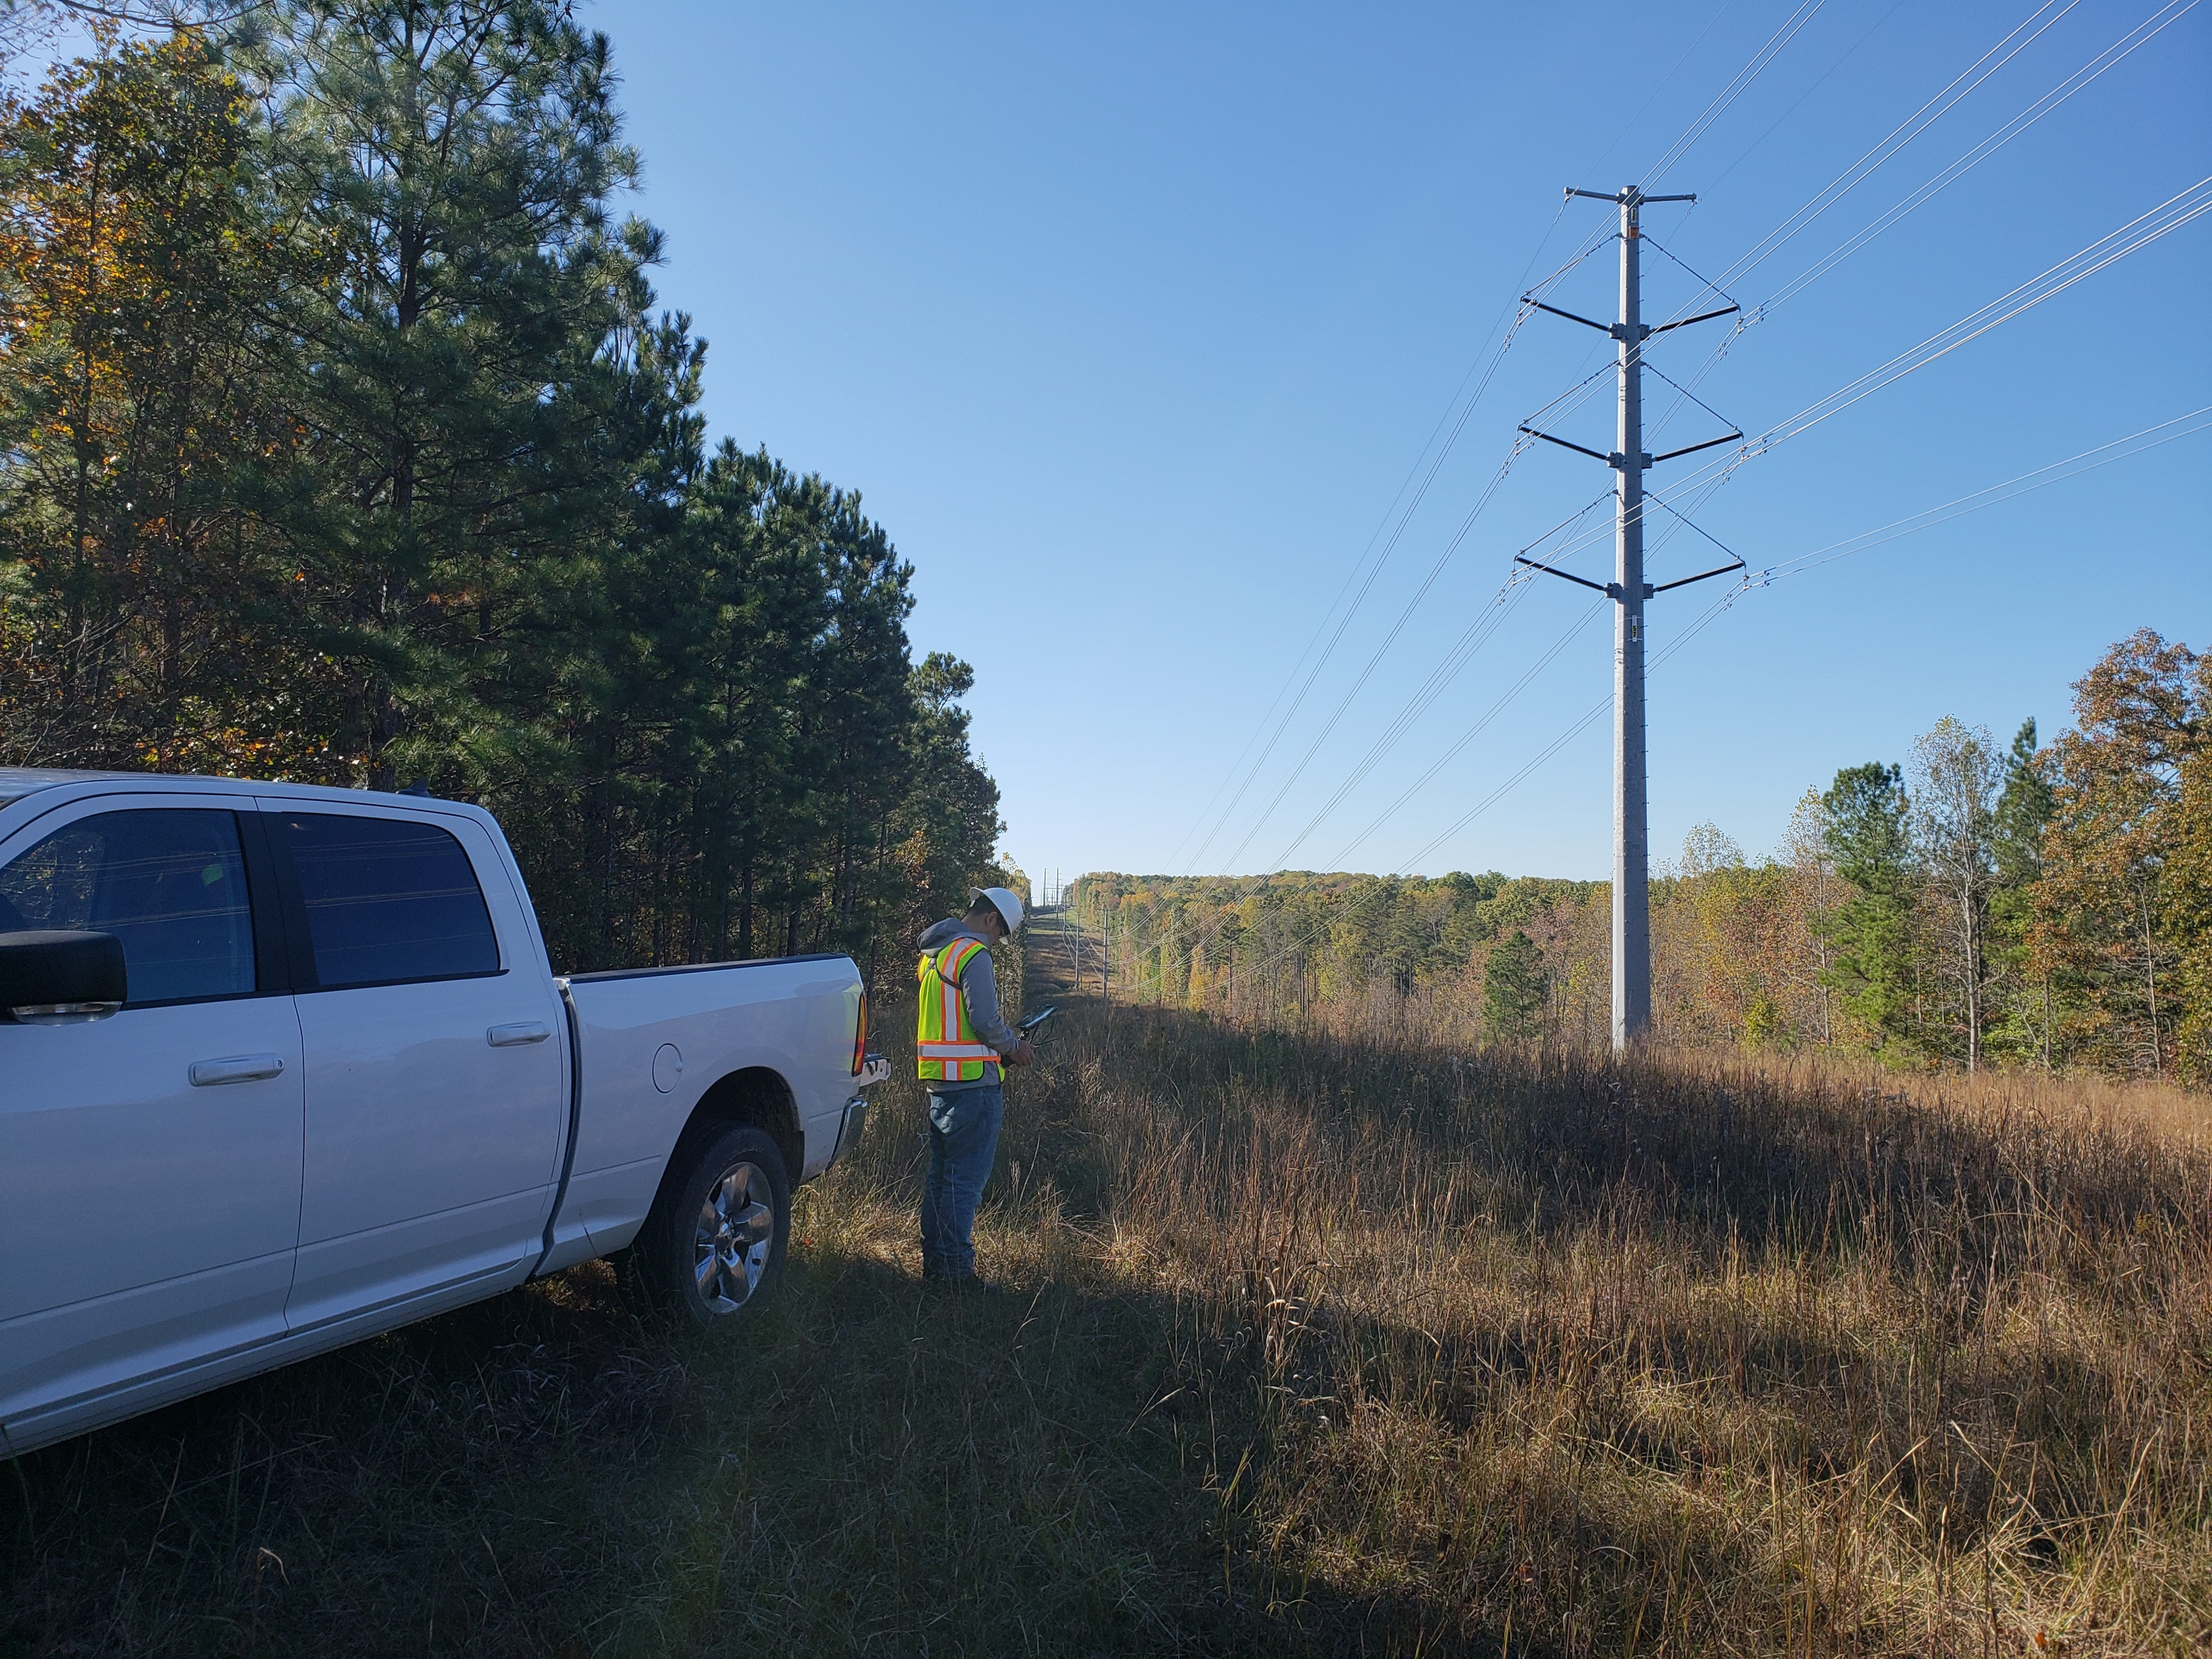 Drone operator performs field inspection of powerlines